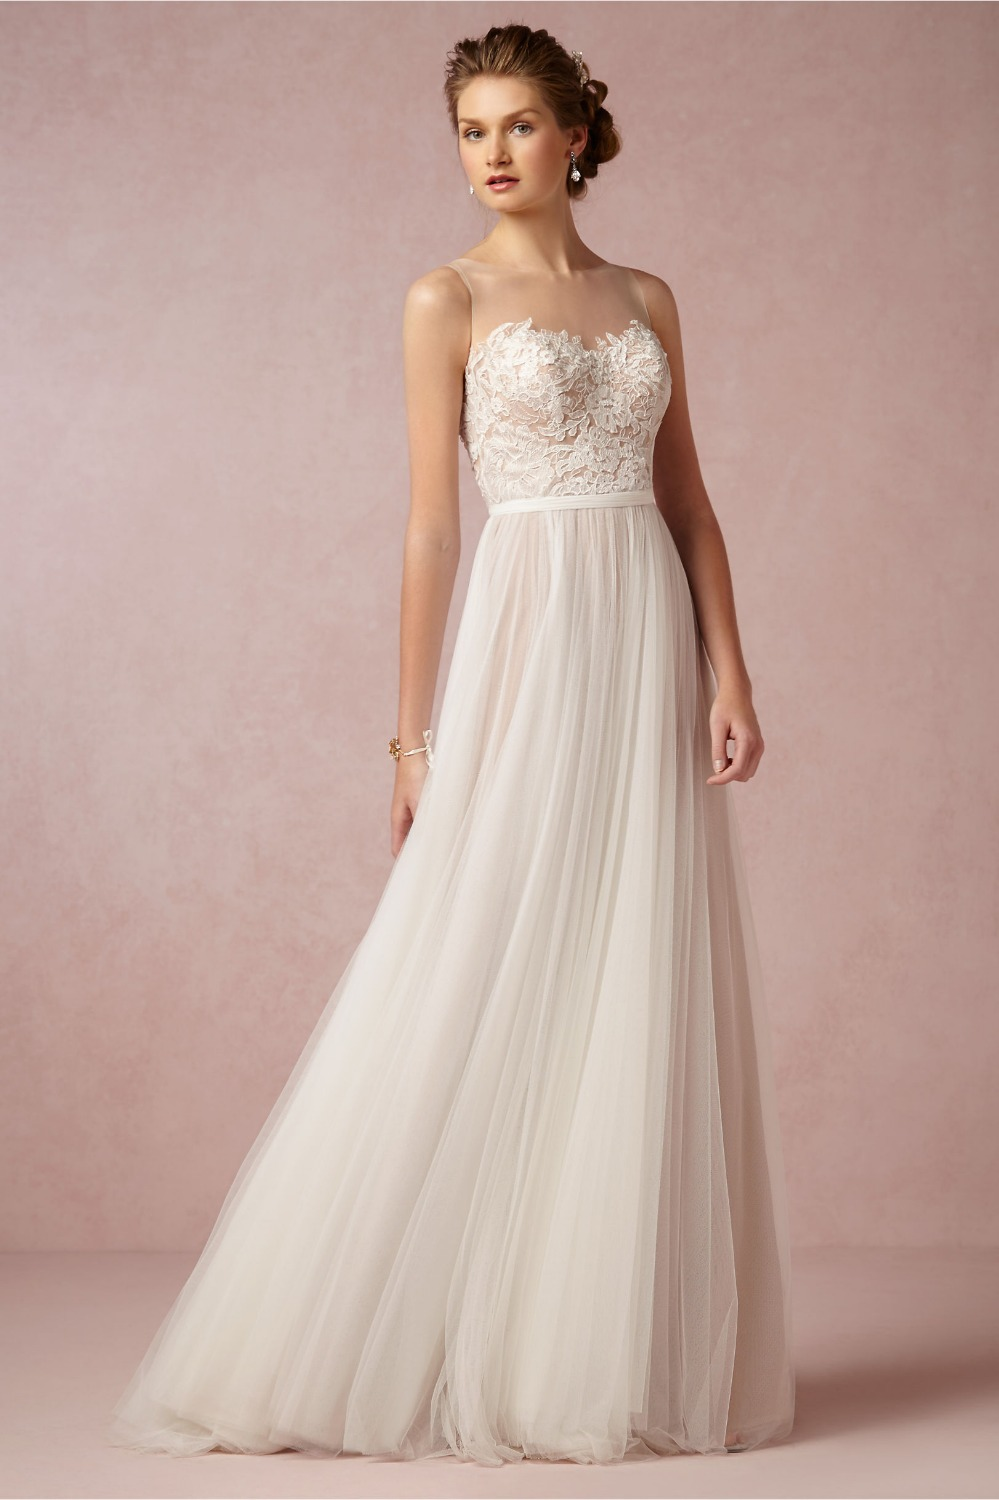 2016 new dreamy fairytale sheer illusion neck sleeveless for Wedding dresses with sheer illusion neckline